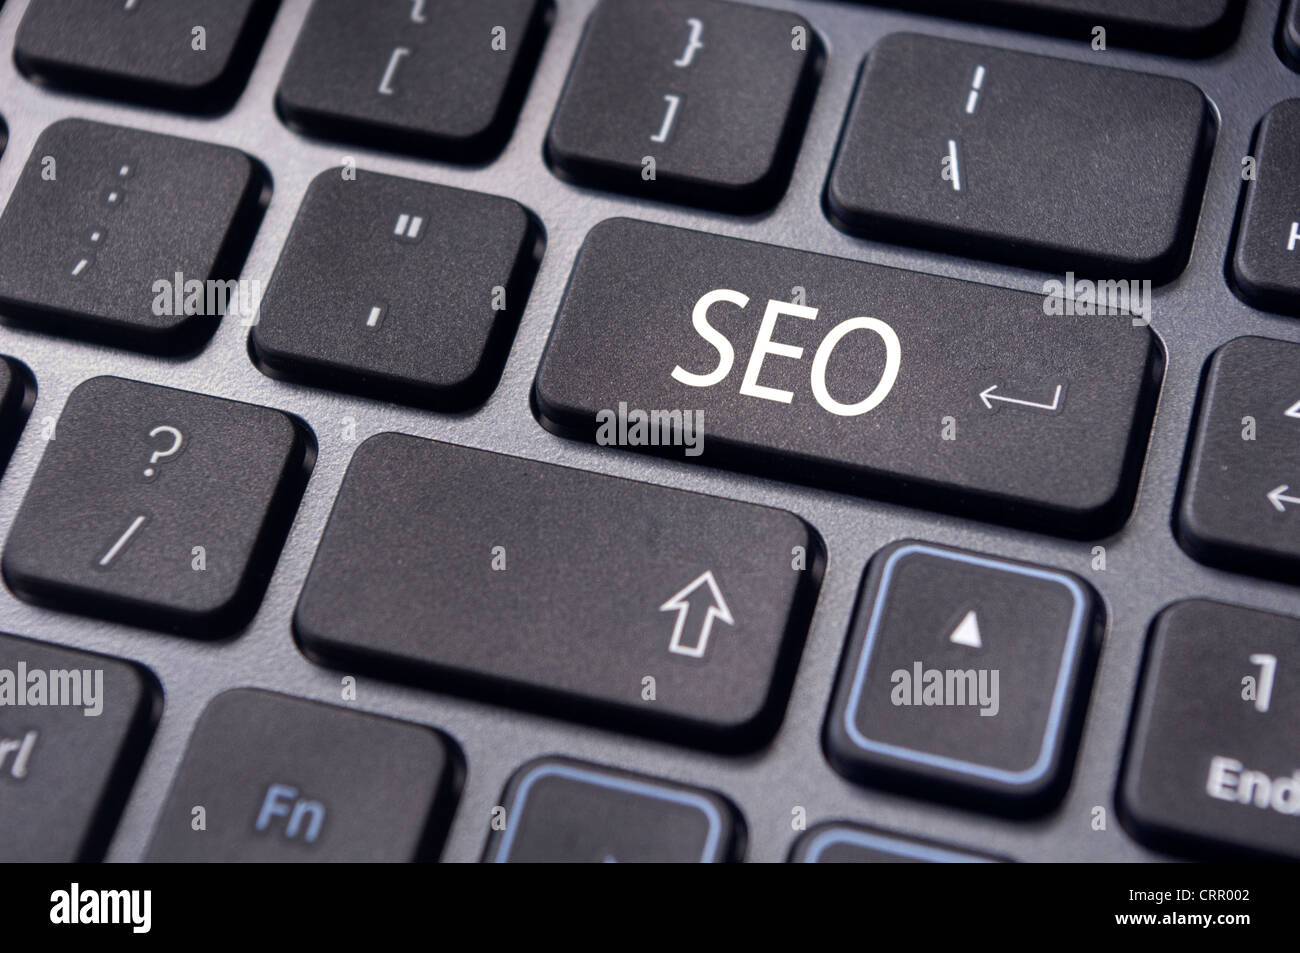 Search engine optimization, SEO concepts, with SEO keyword on enter key of keyboard. - Stock Image